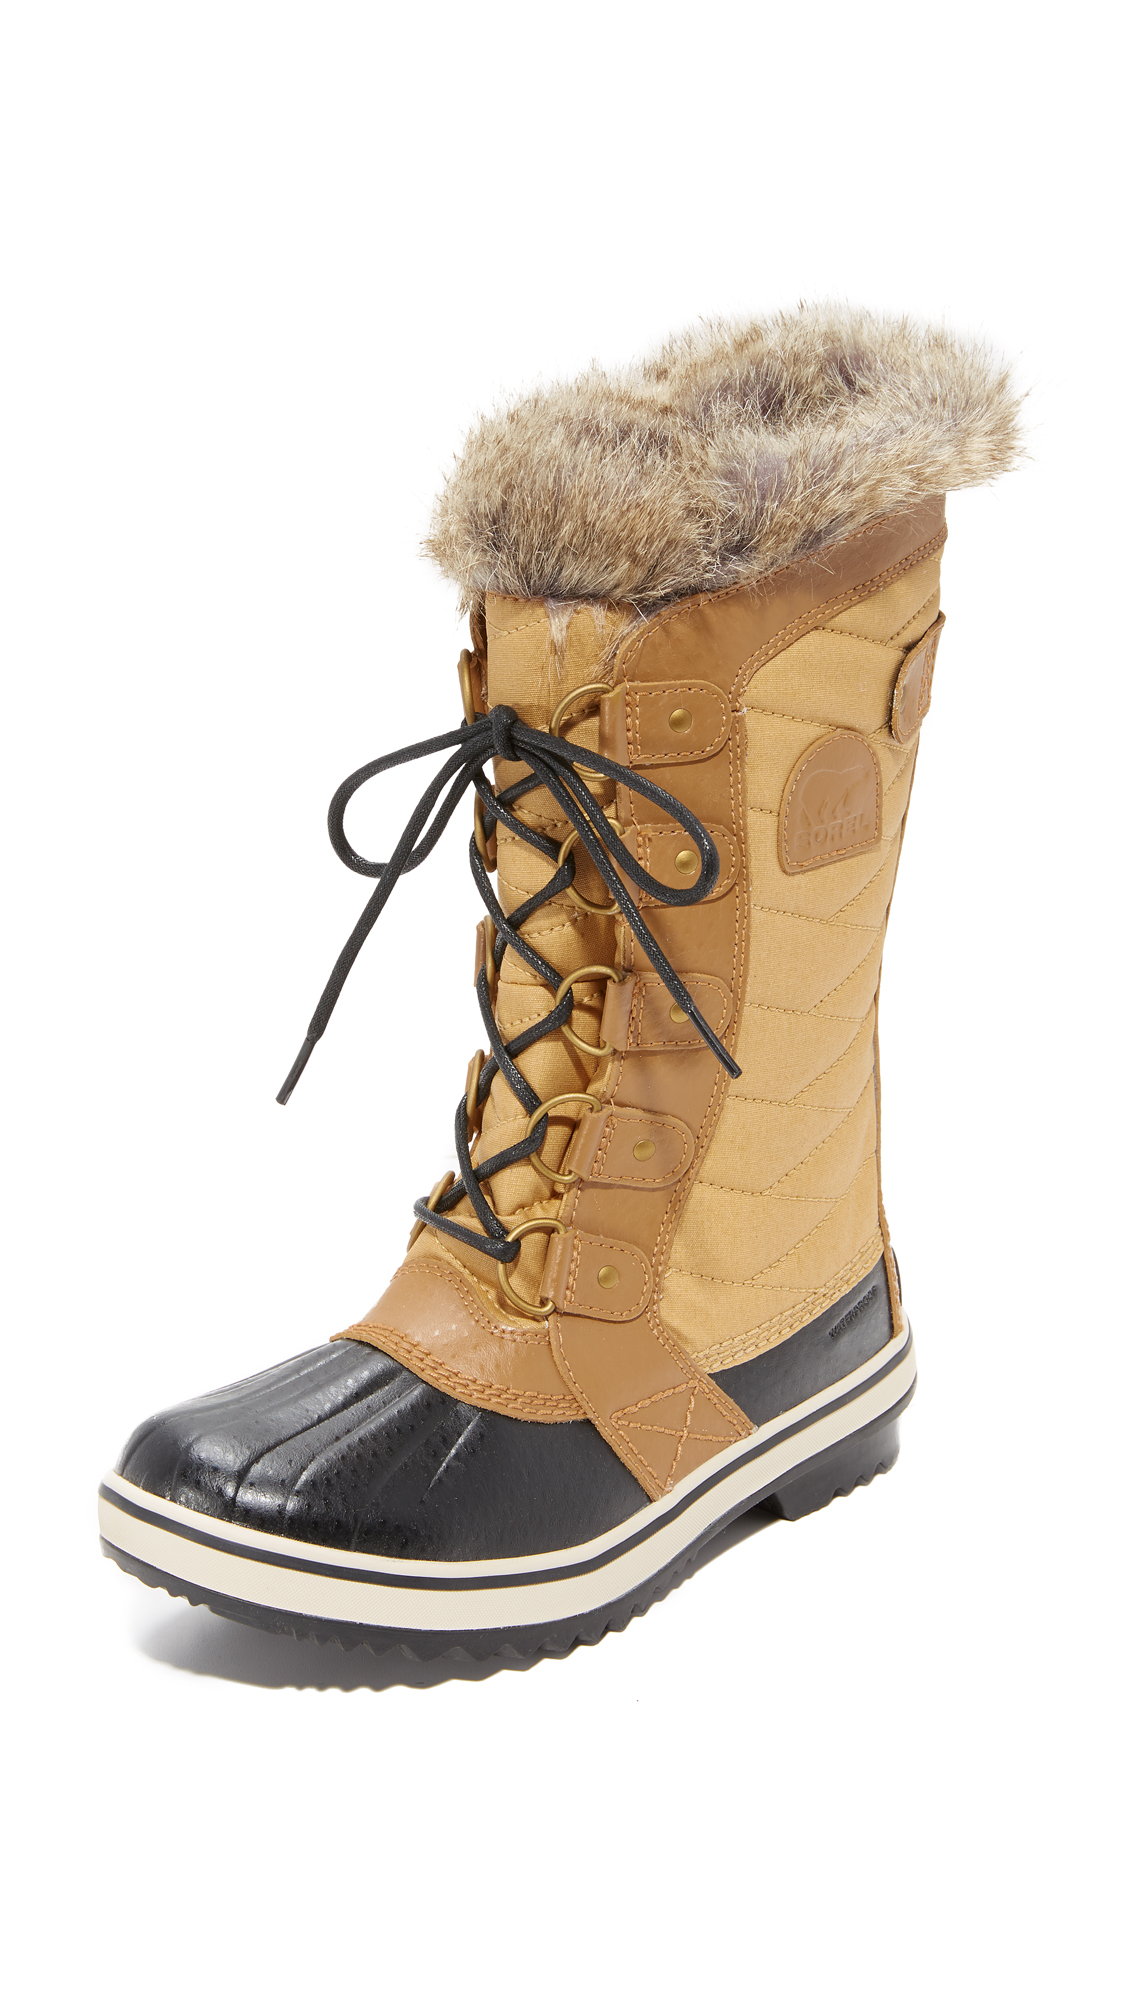 Sorel Tofino II Boots - Curry/Fawn